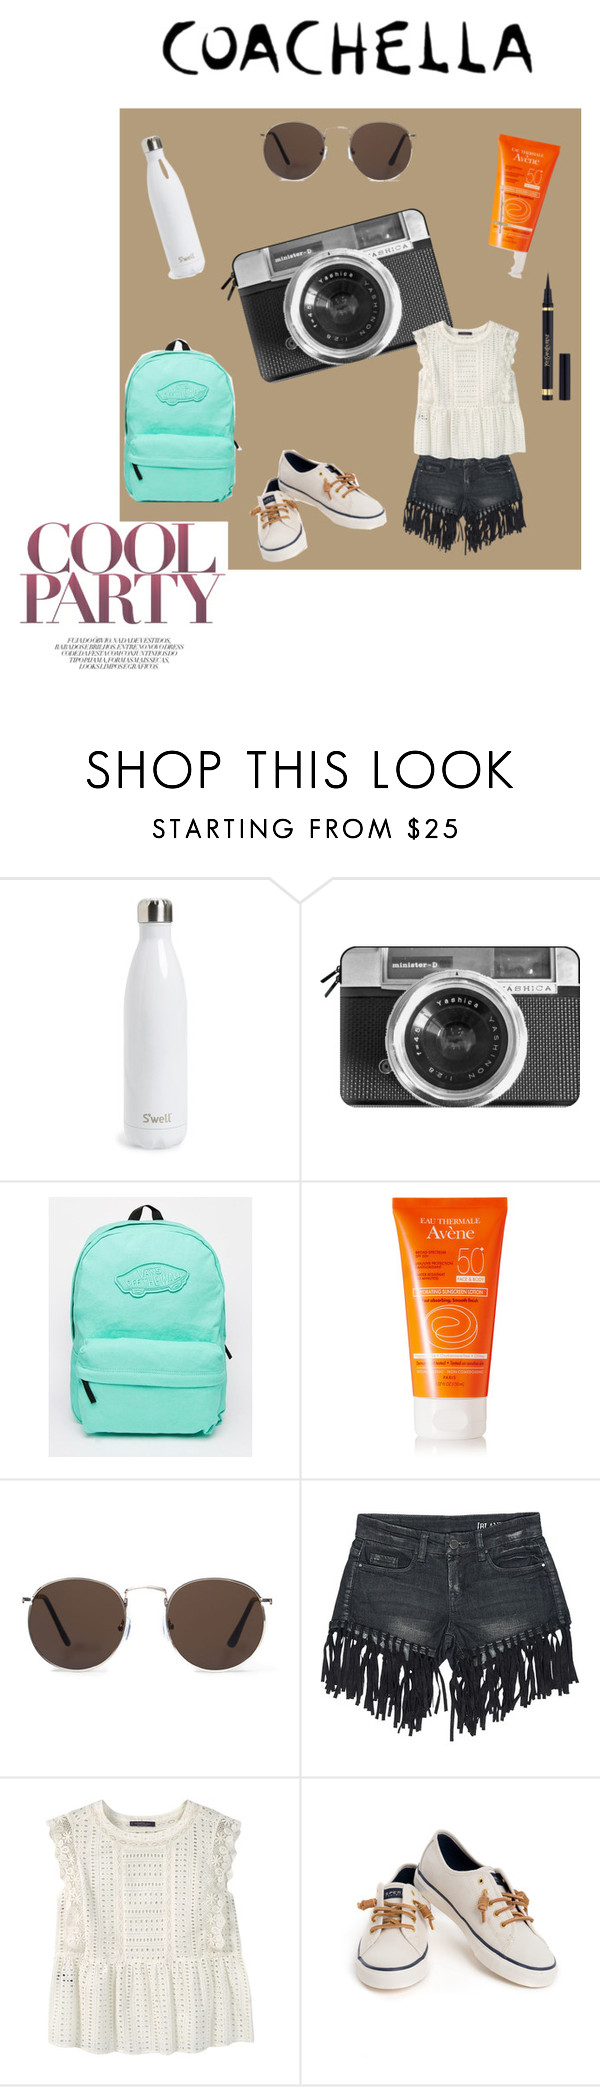 """""""Ready. Set. Coachella."""" by cheetakat12 on Polyvore featuring S'well, Casetify, Vans, Avène, MANGO, Sans Souci, Violeta by Mango, Sperry, Yves Saint Laurent and packforcoachella"""